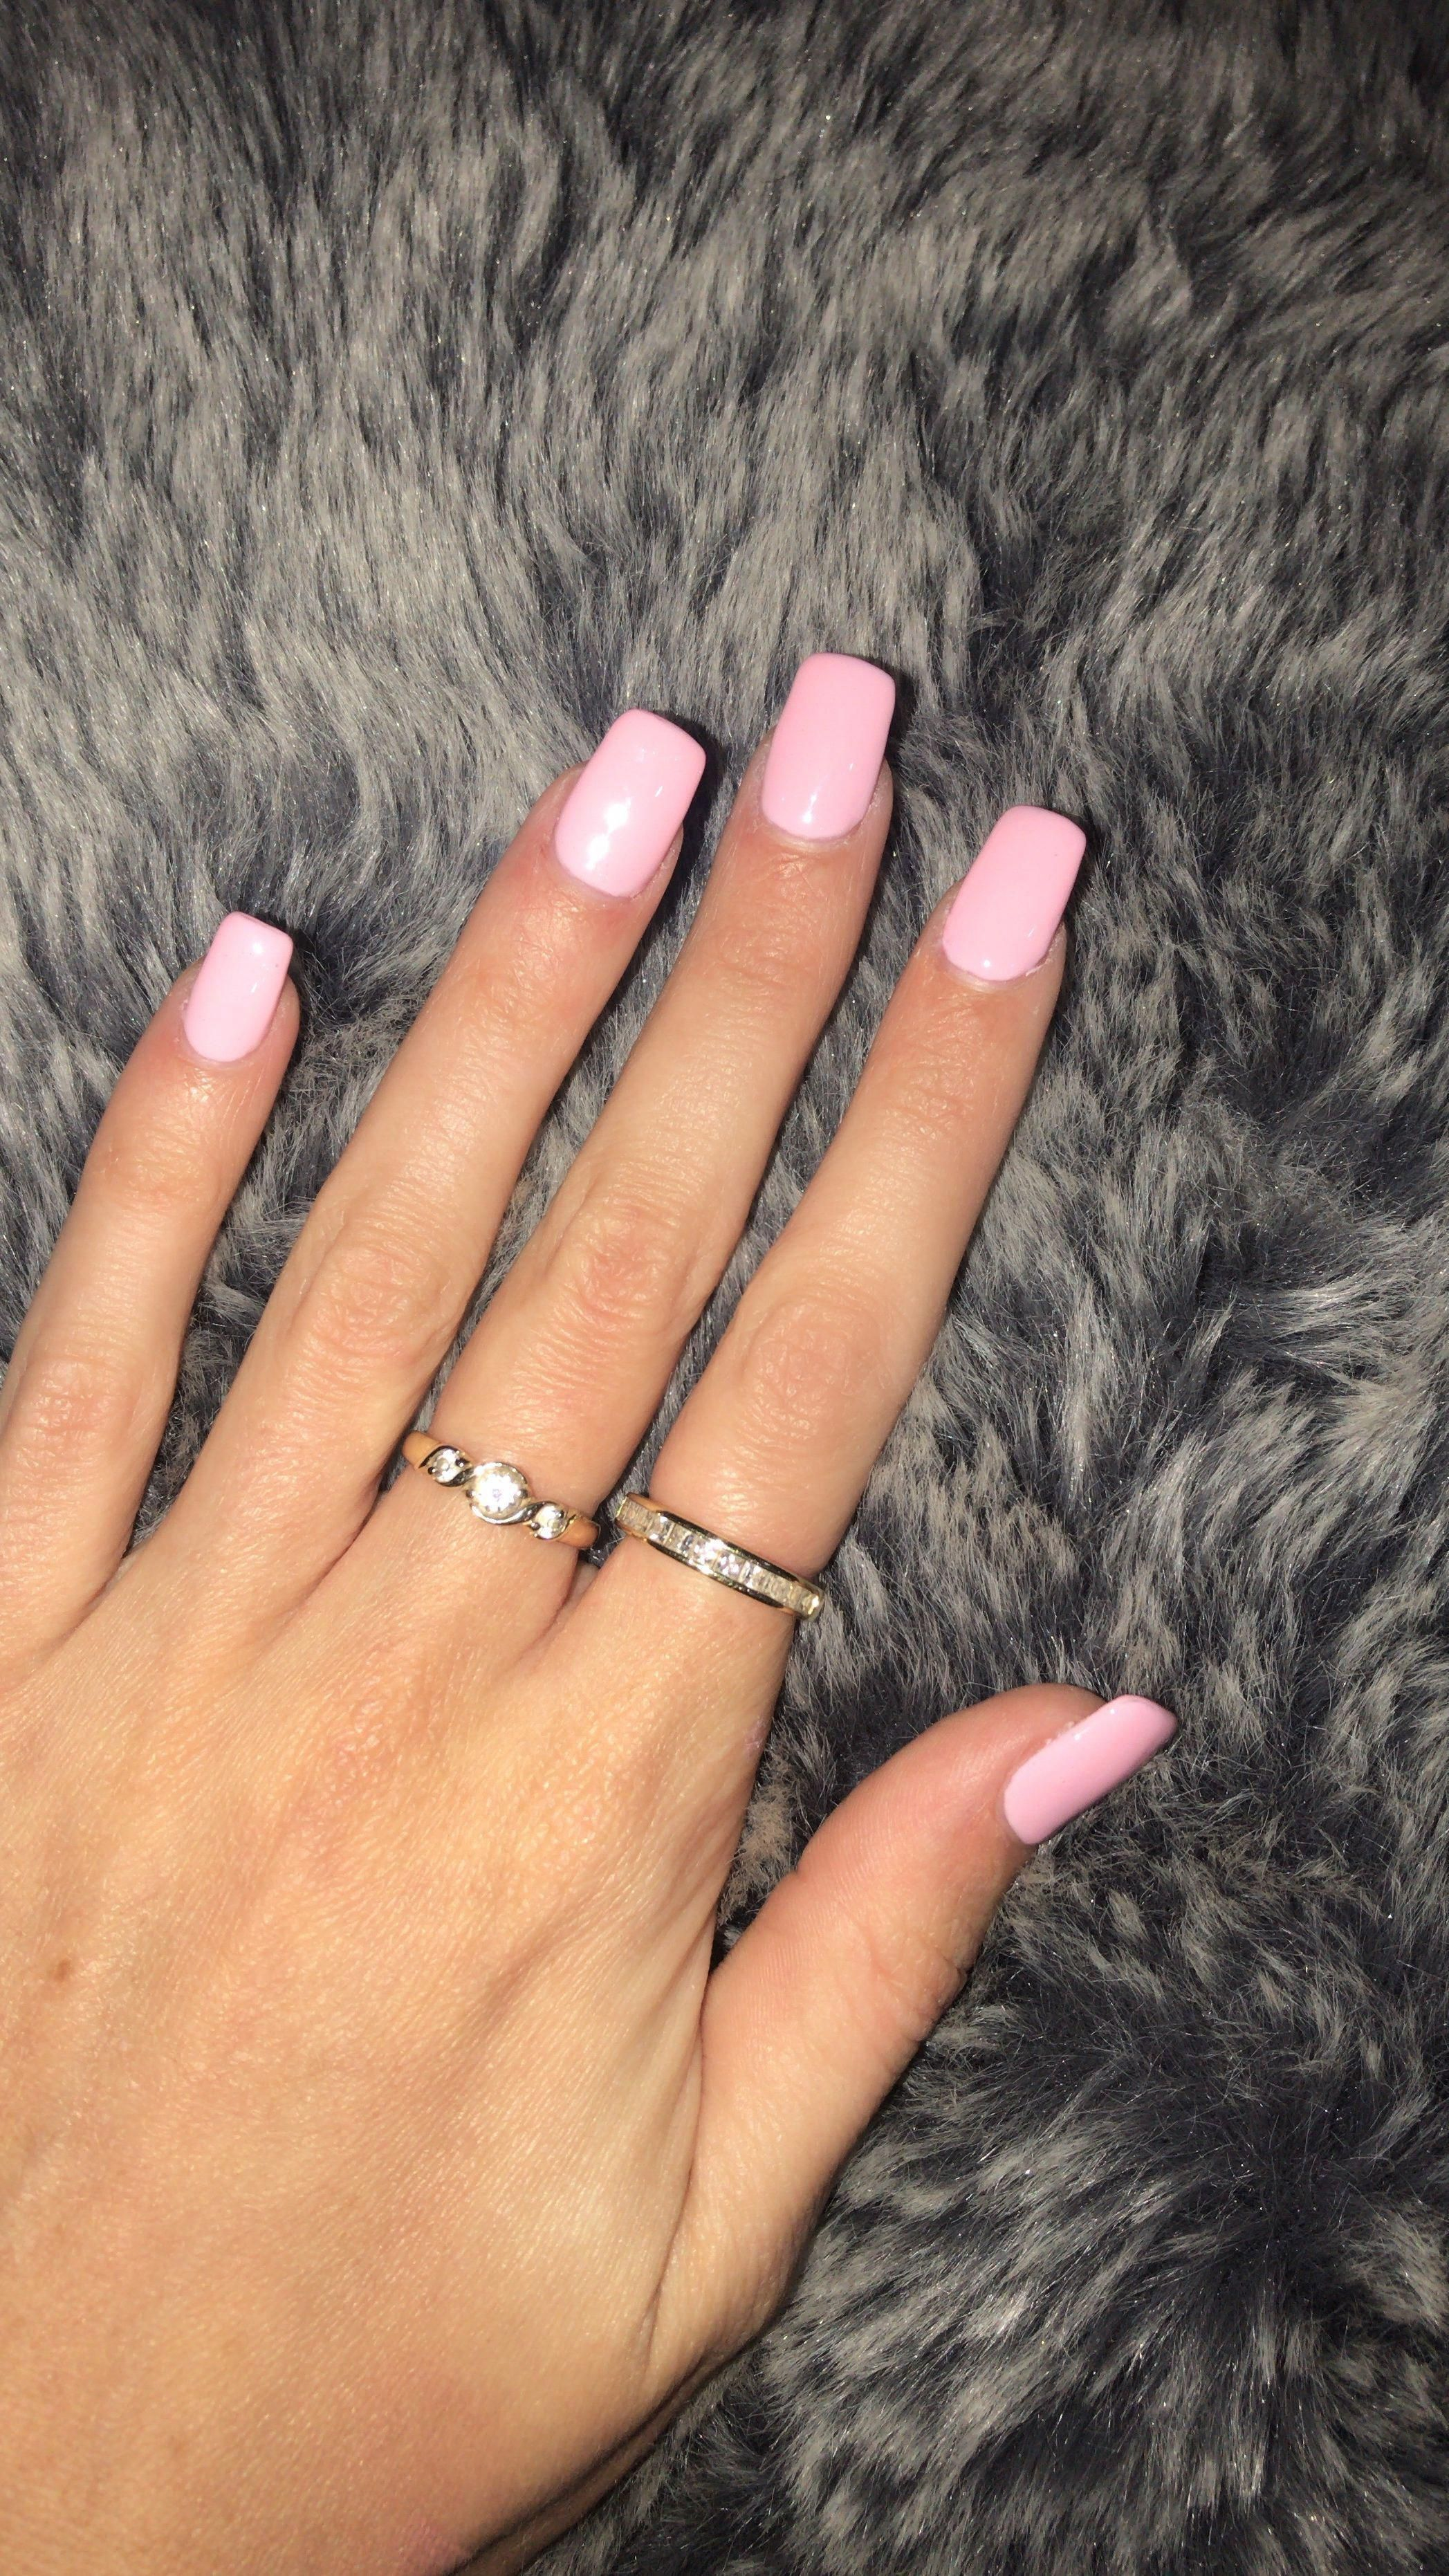 Square Baby Pink Acrylic Nails Colour Is Sunset Fog 599 White Acrylic Nails Water In 2020 Pink Acrylic Nails Light Pink Acrylic Nails Square Acrylic Nails